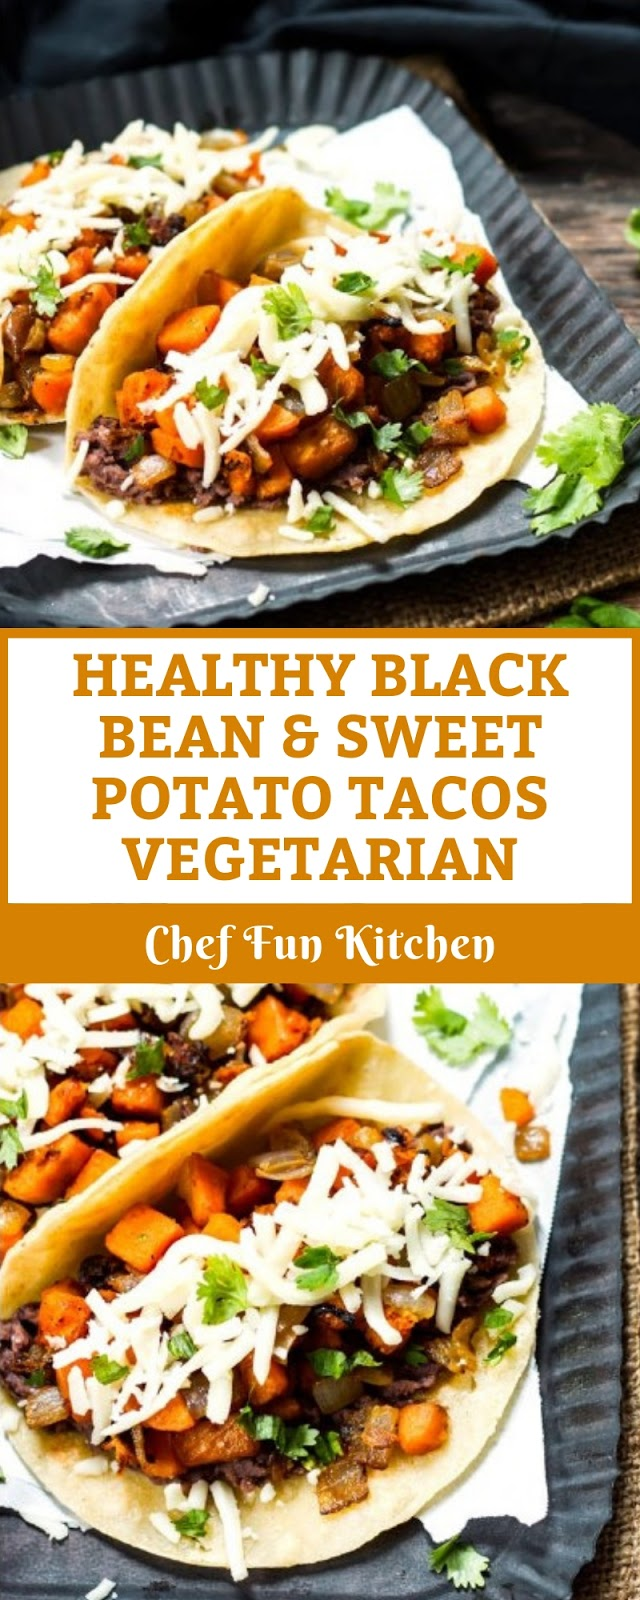 HEALTHY BLACK BEAN & SWEET POTATO TACOS | VEGETARIAN